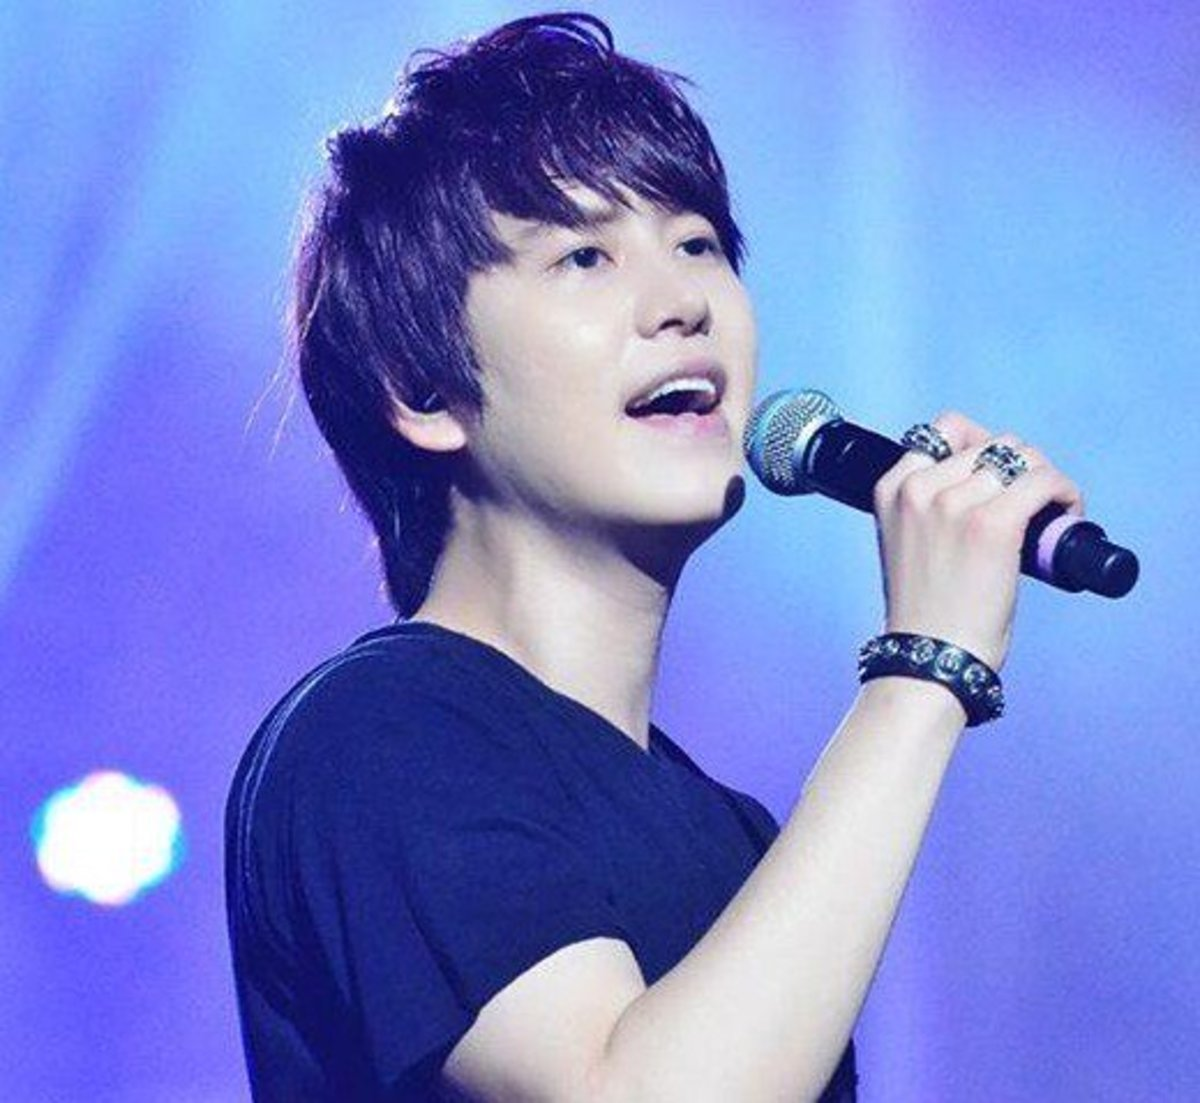 Top 10 Best K-Pop Male Vocalists